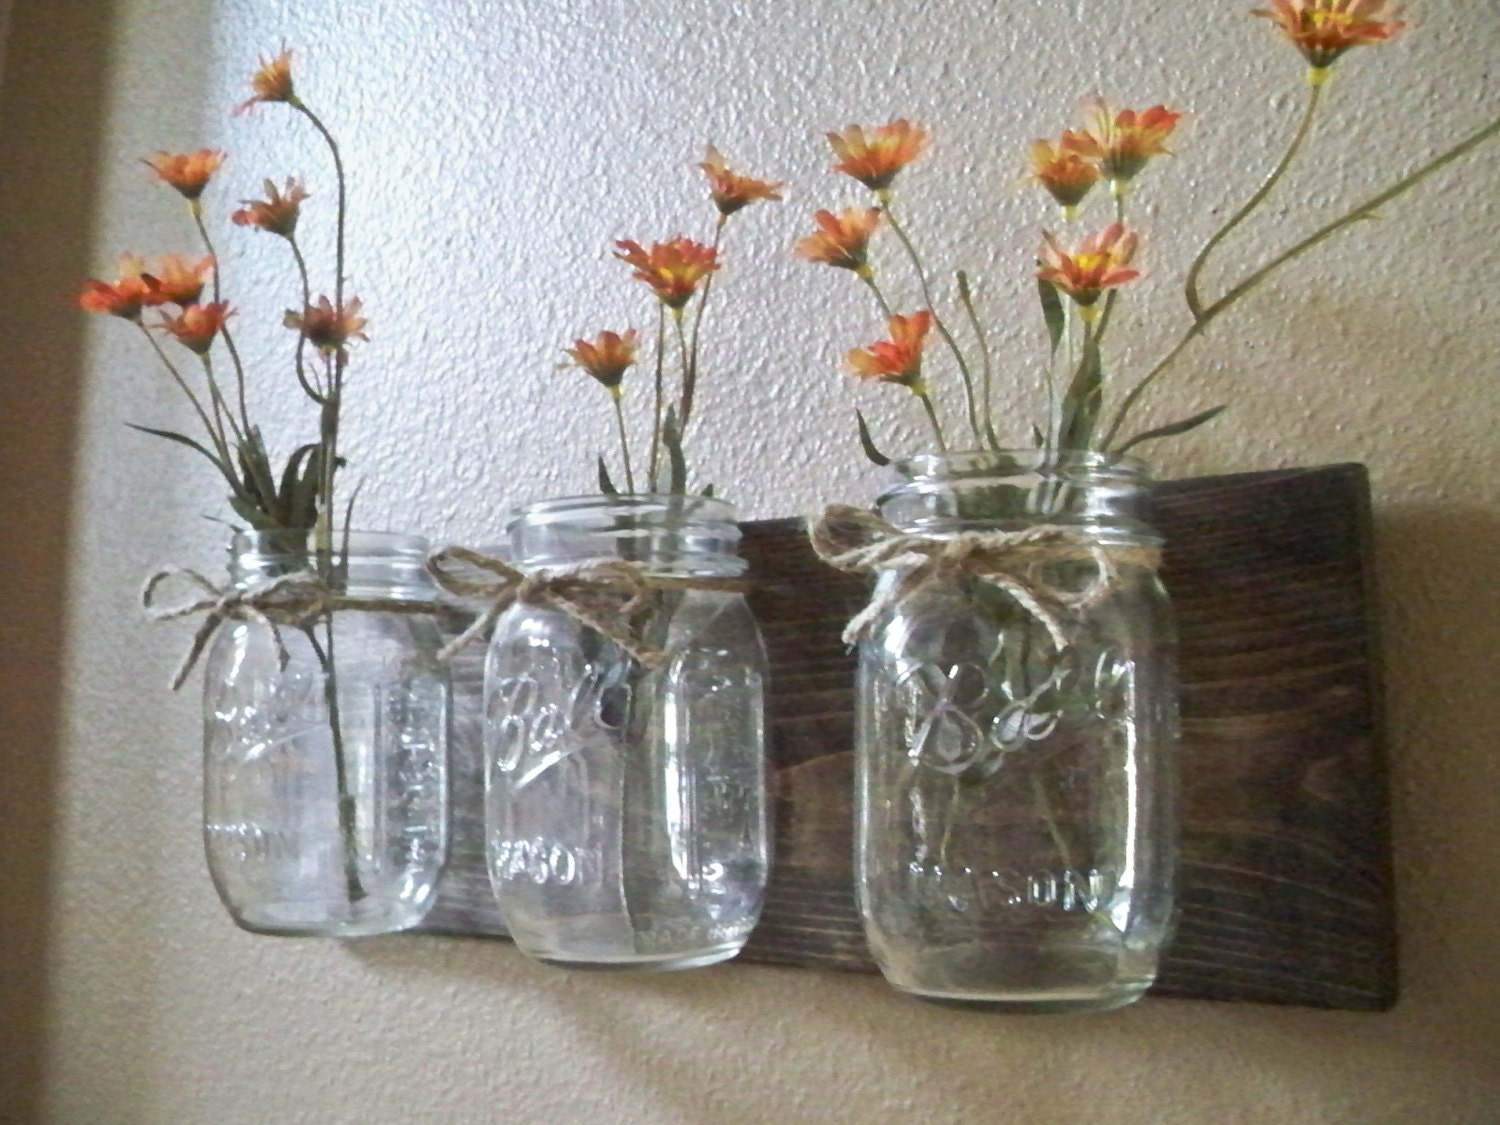 Mason Jar Wall Decor How To : Mason jar wall decor farmhouse country by lisamarieds